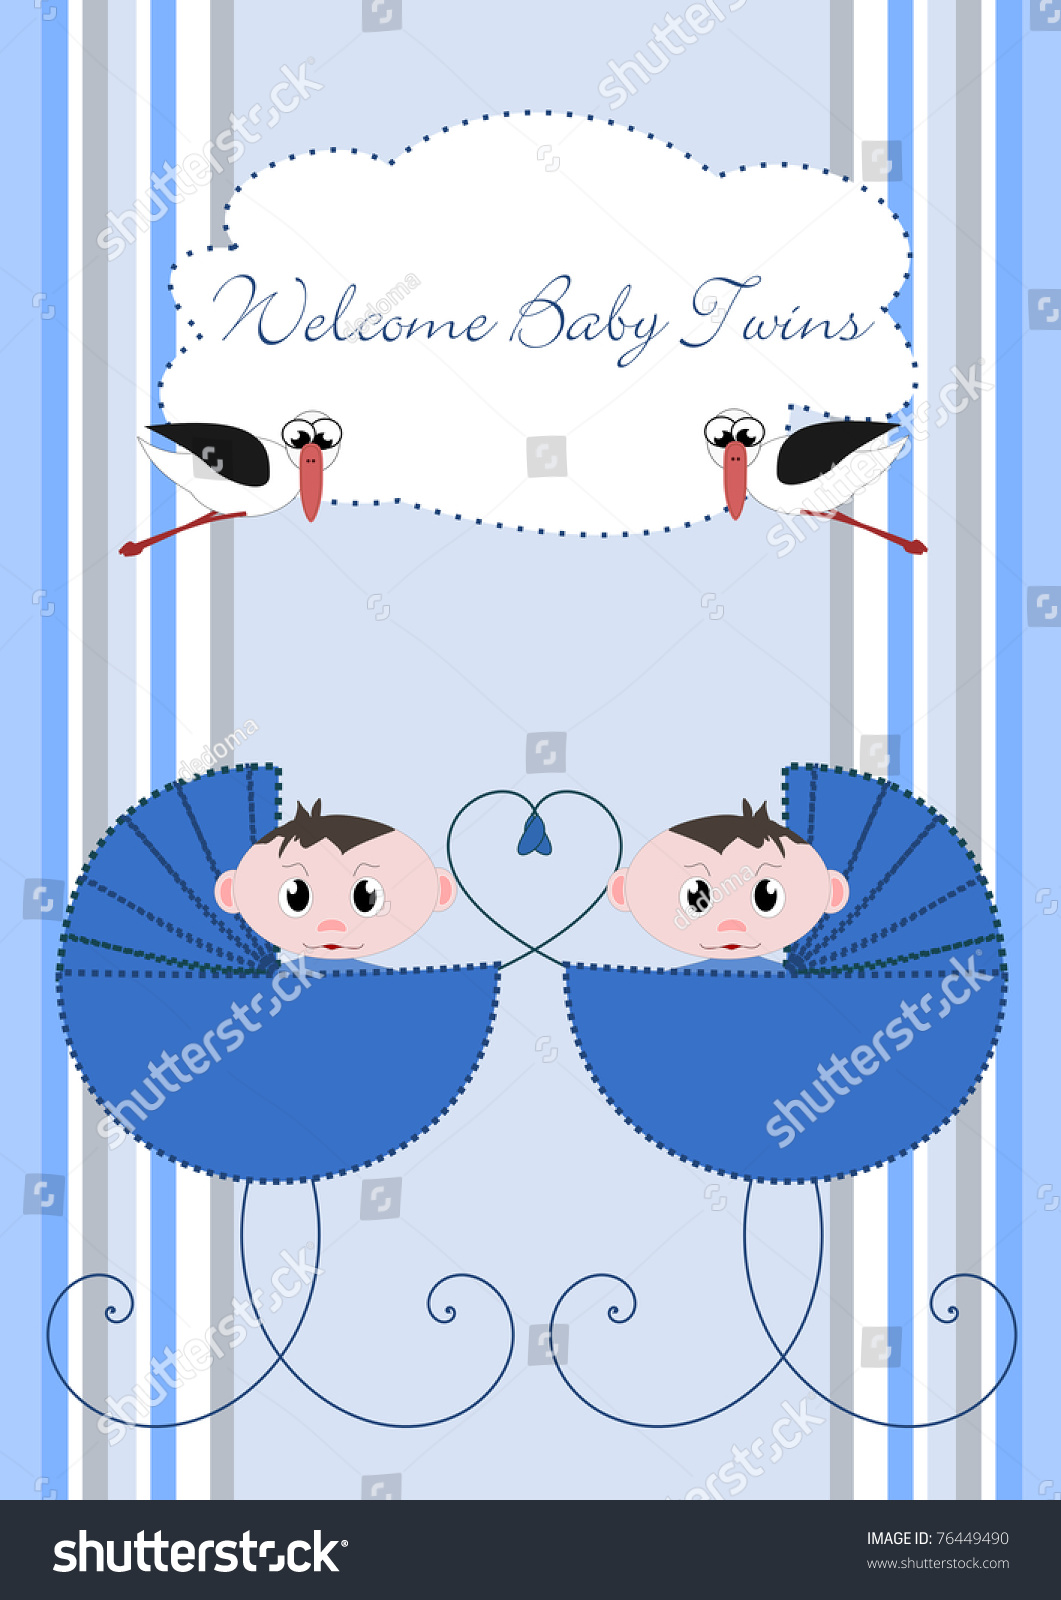 Welcome Baby Twins Stock Photo 76449490 Shutterstock